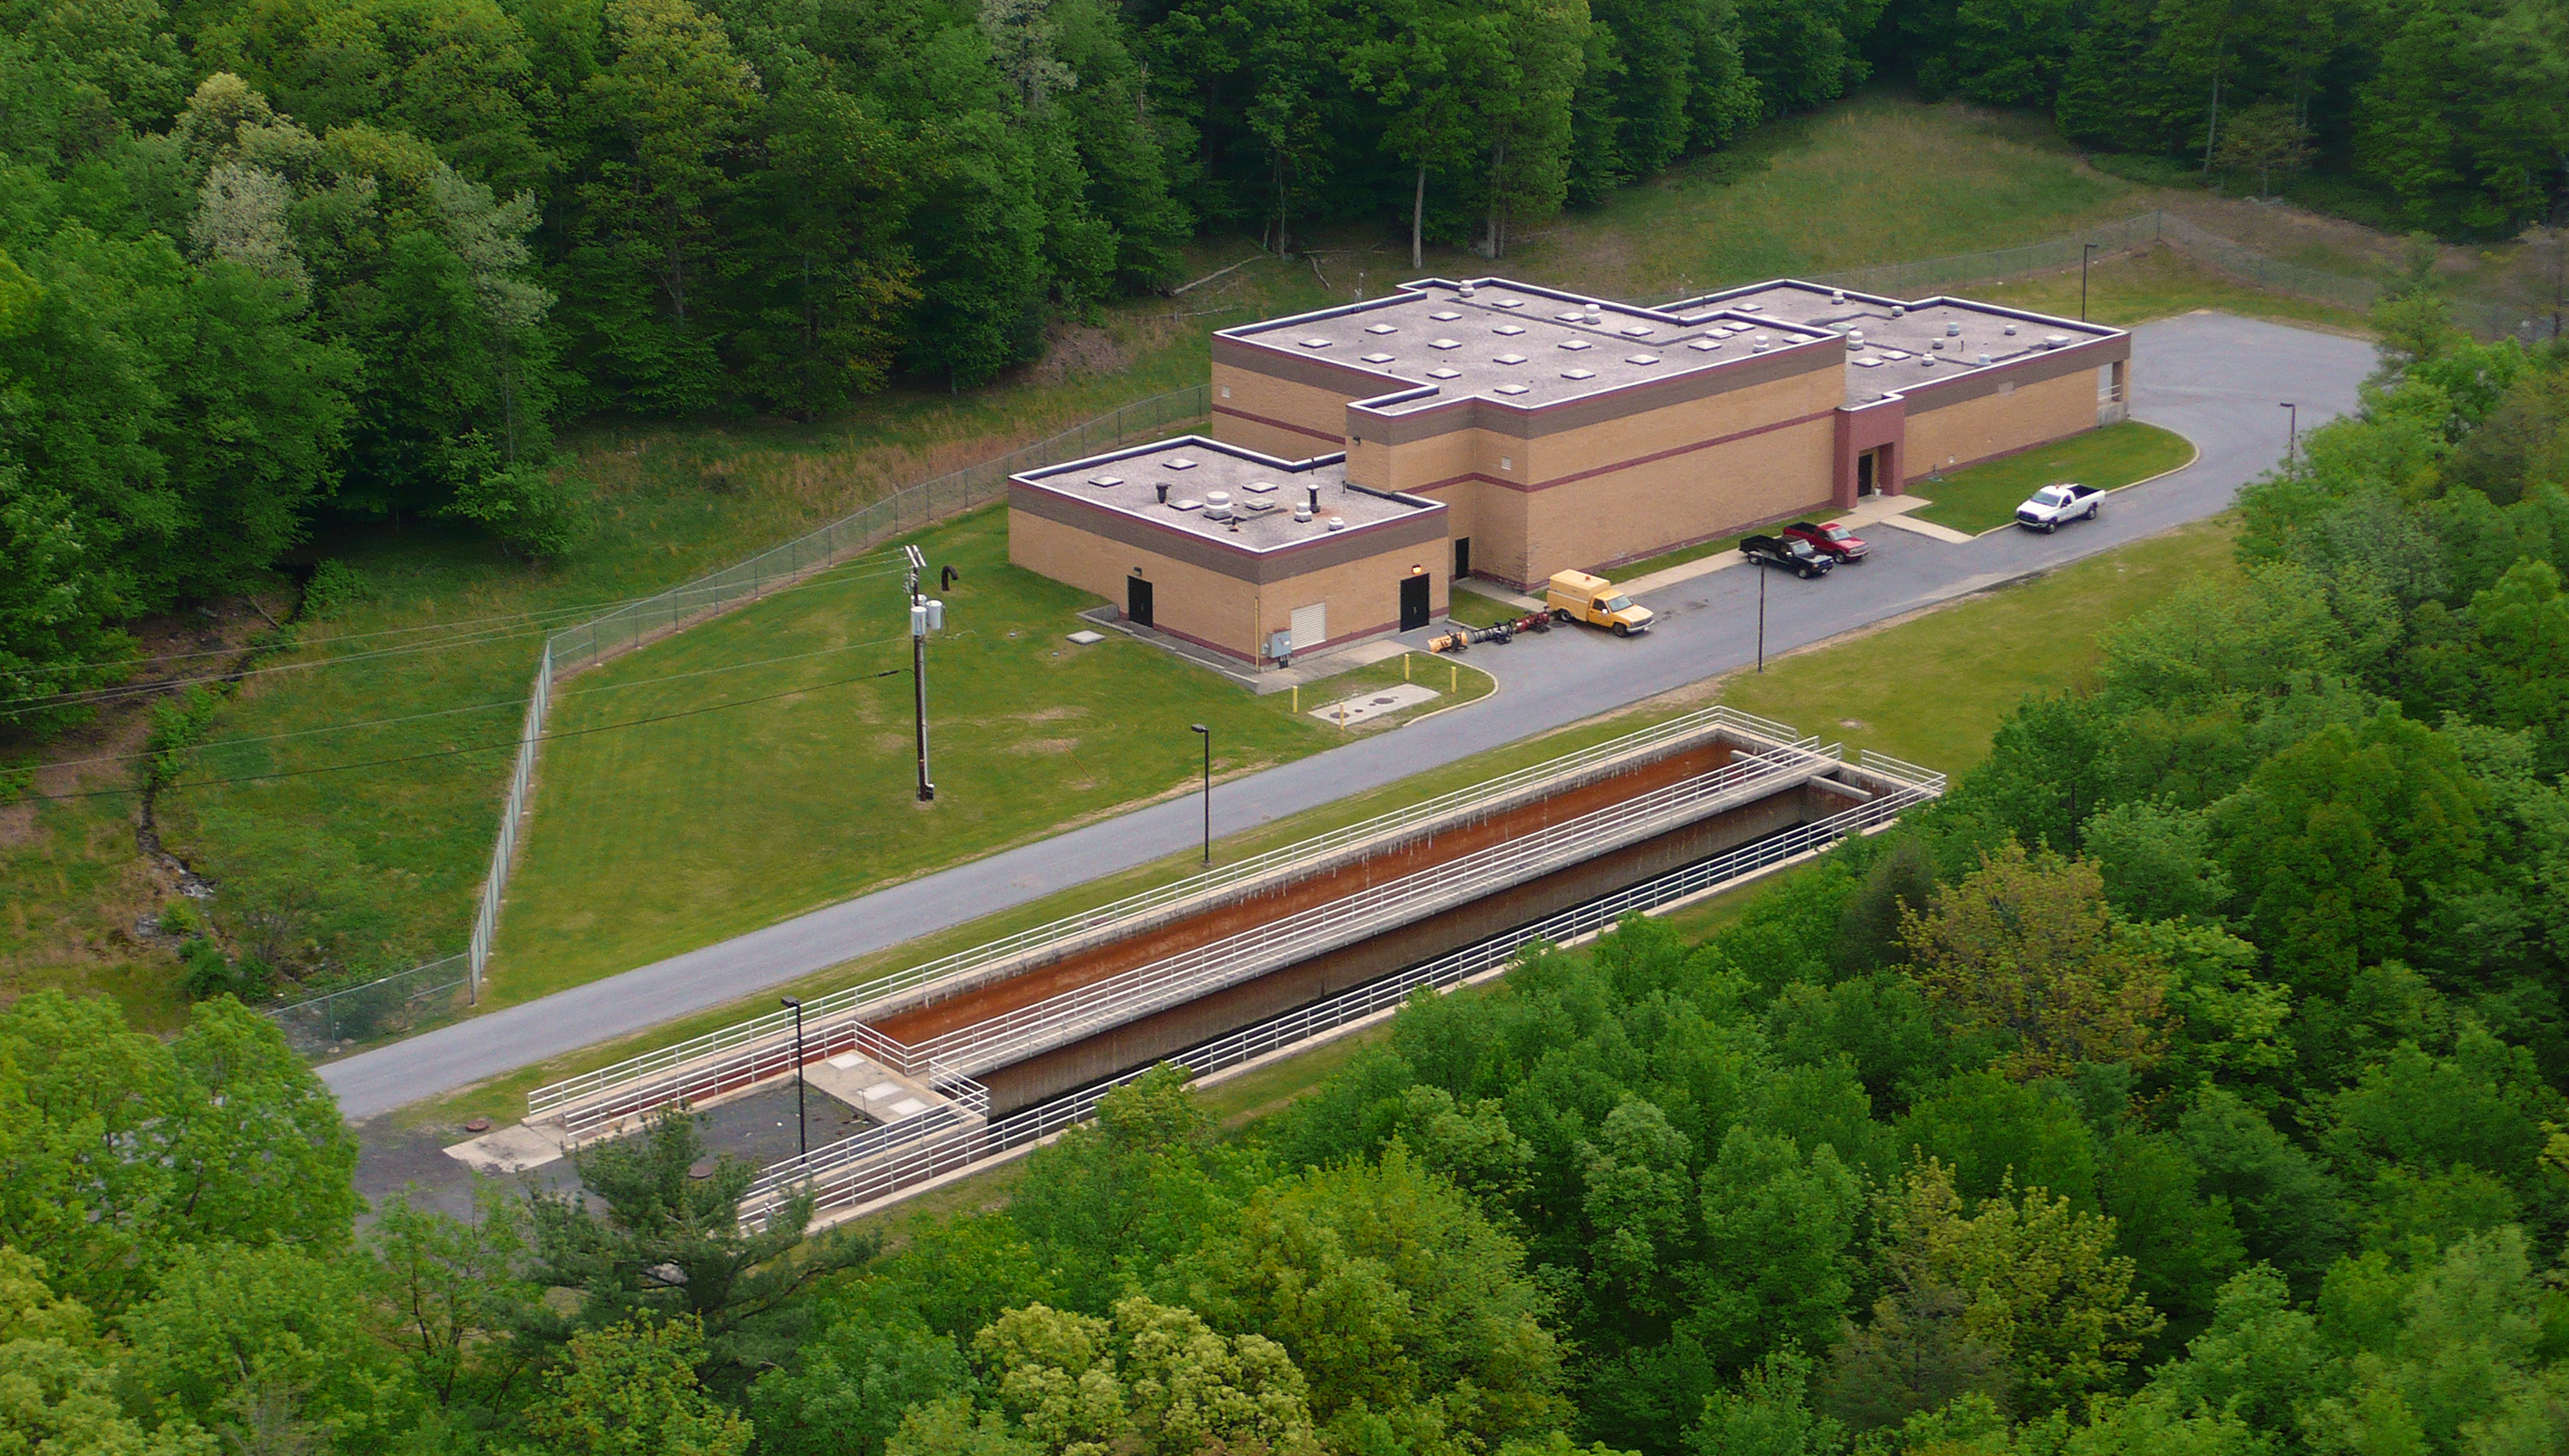 Broad Mountain Water Filtration and Treatment Facility